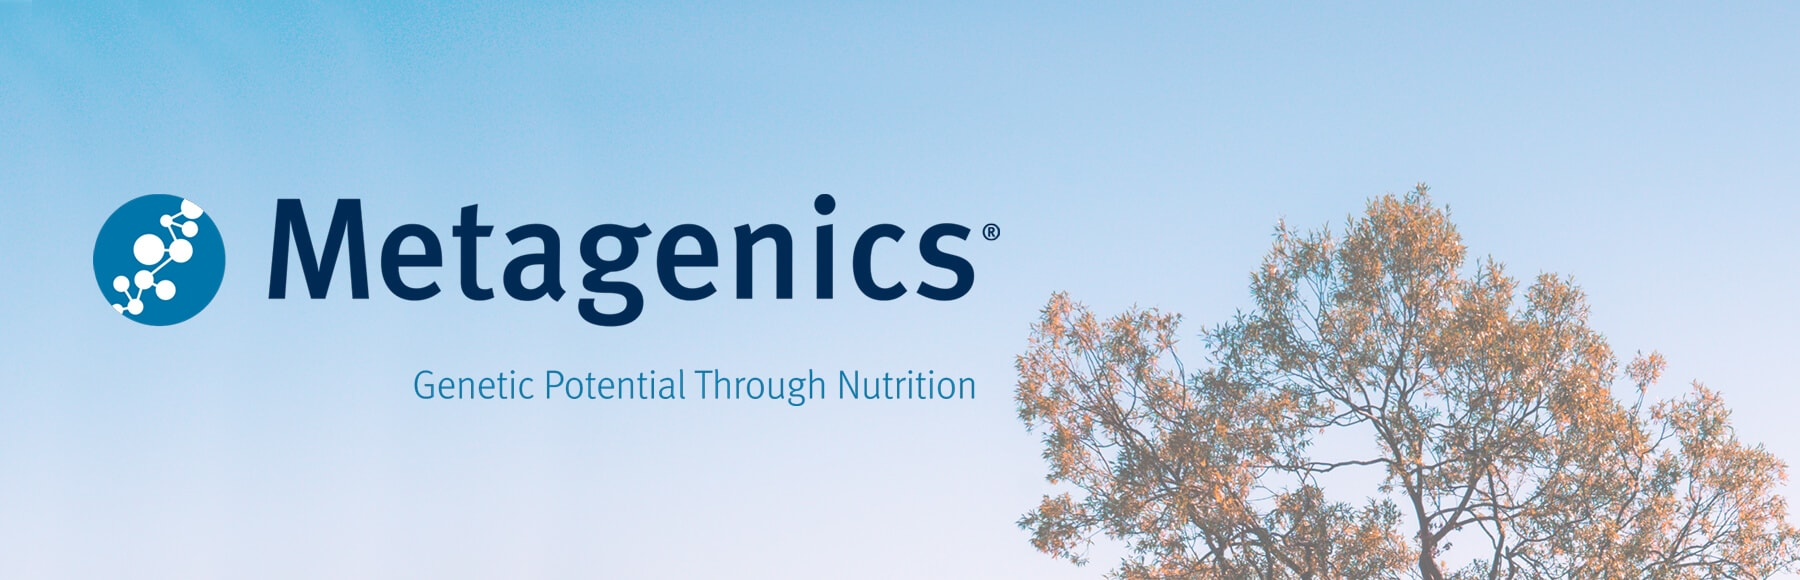 Metagenics Logo Banner